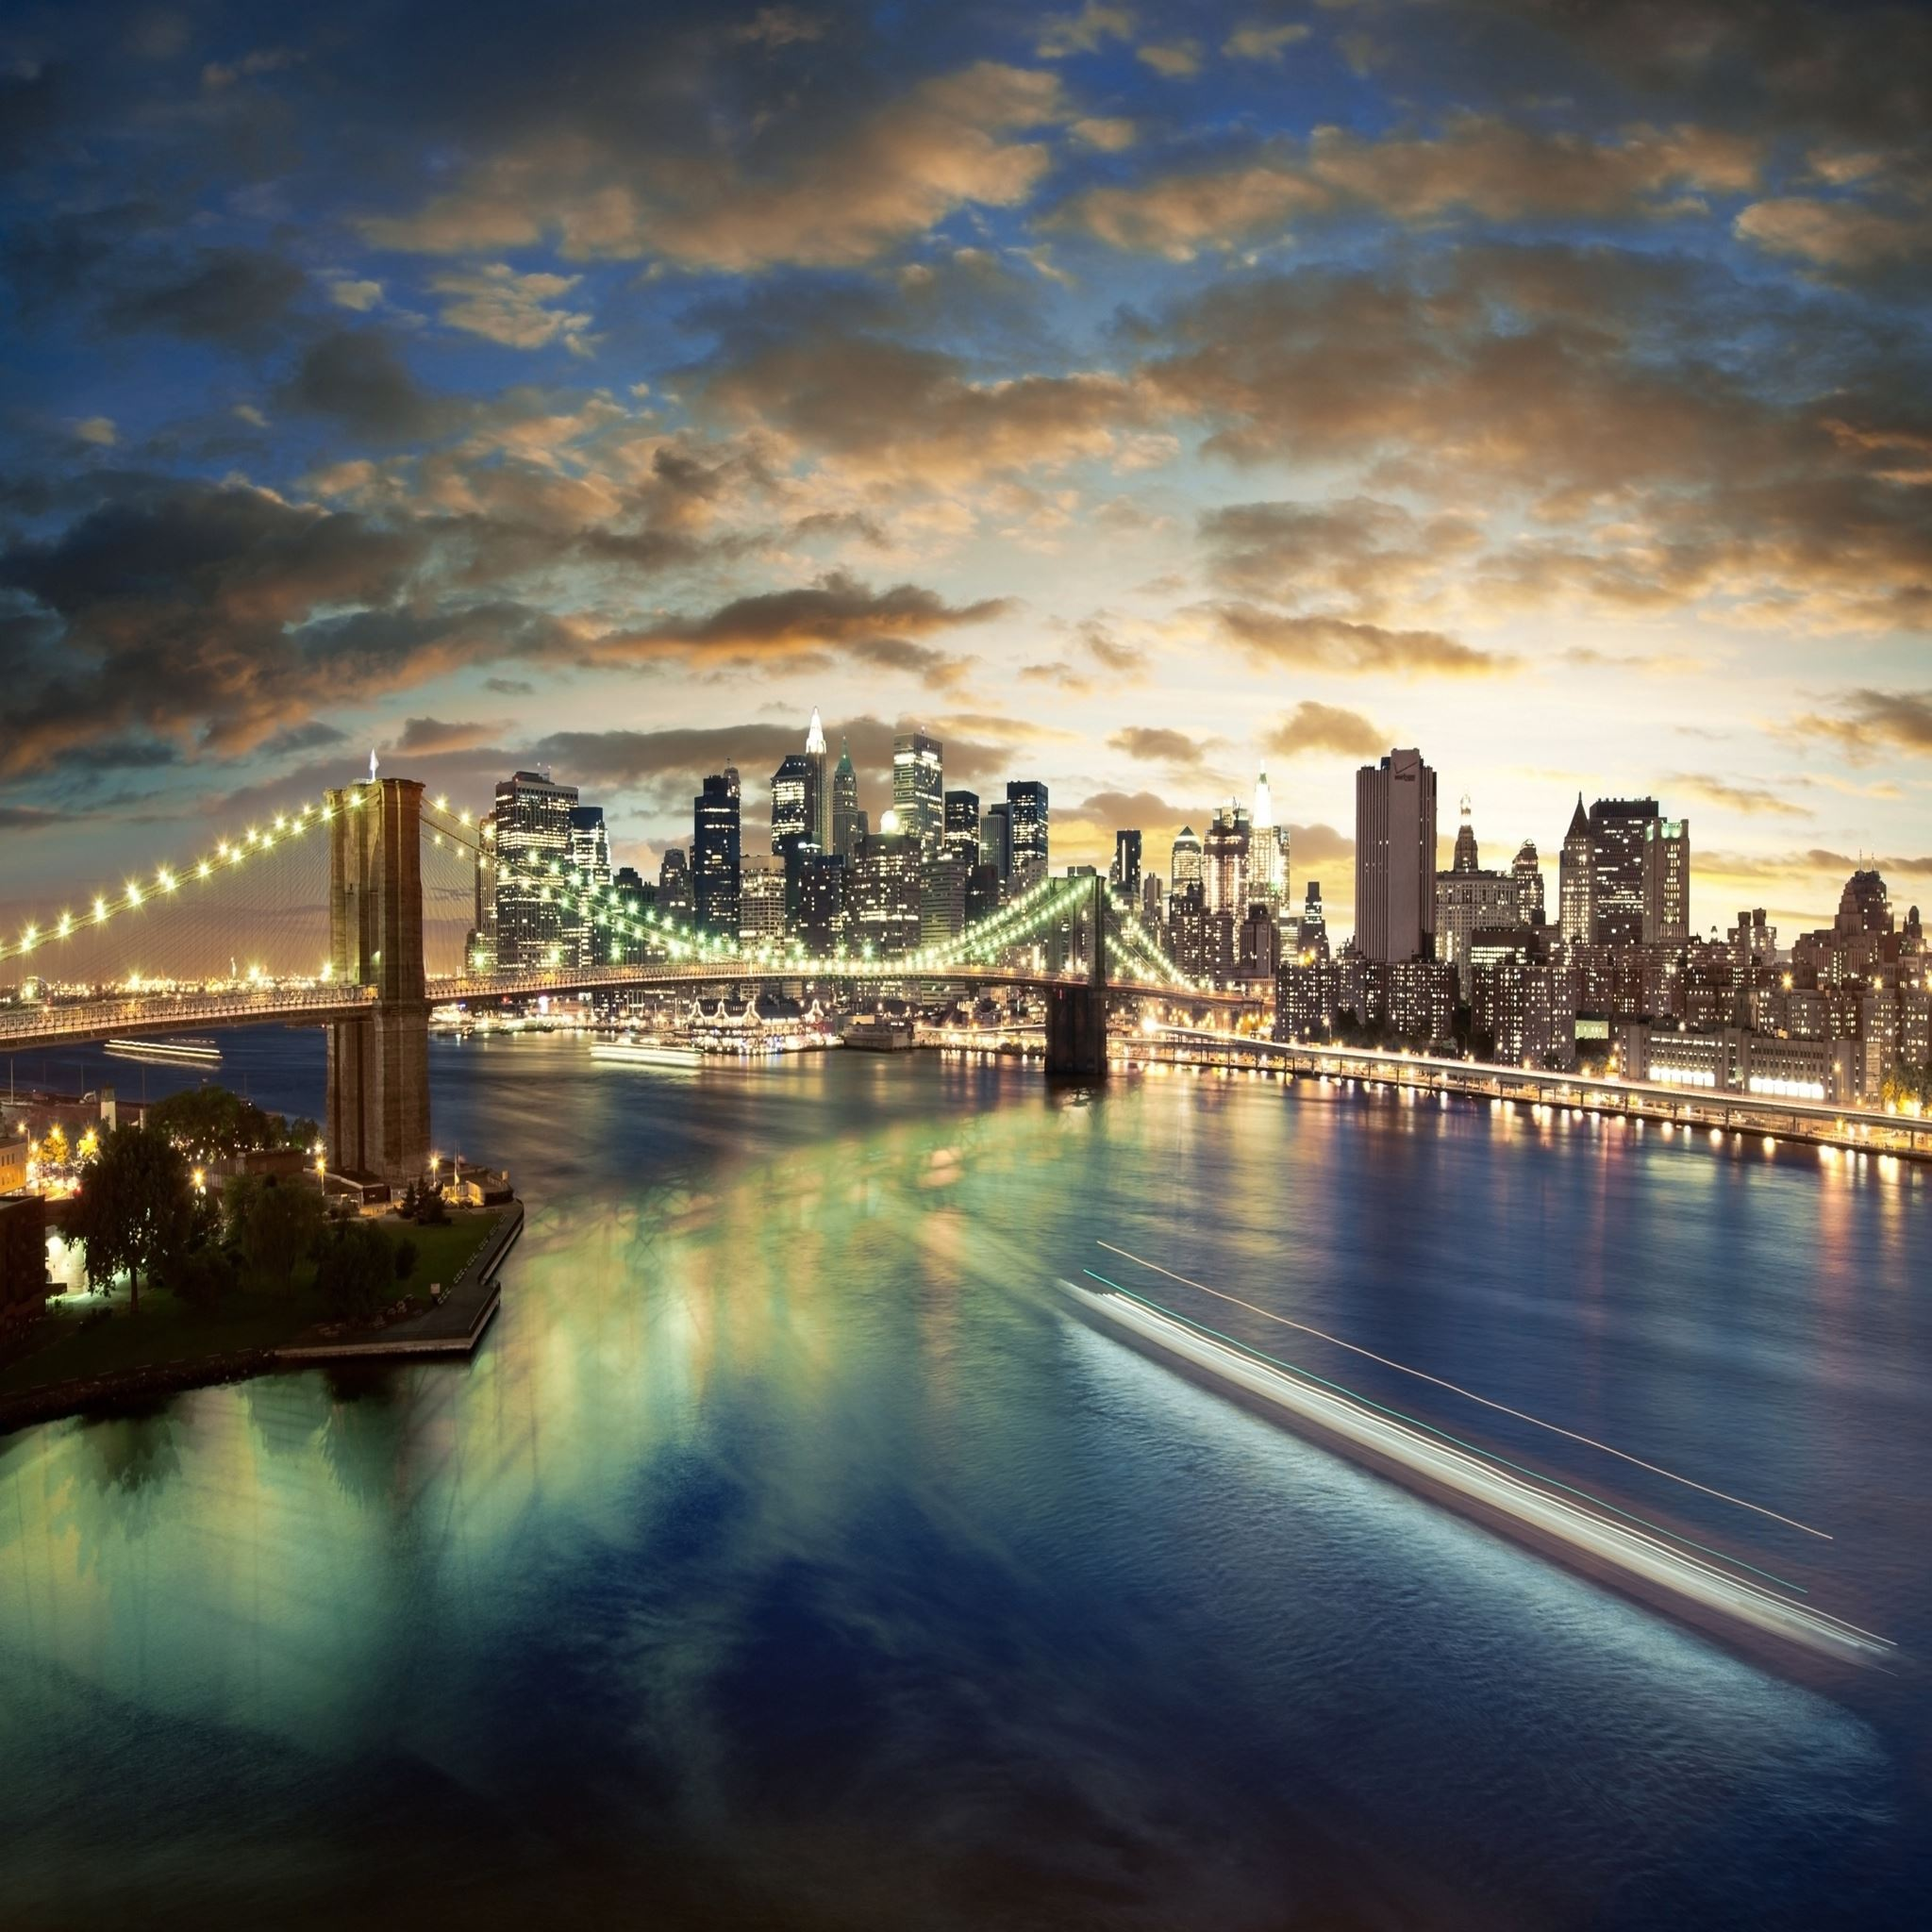 Wallpaper Iphone New York: New York City Brooklyn Bridge IPad Air Wallpaper Download